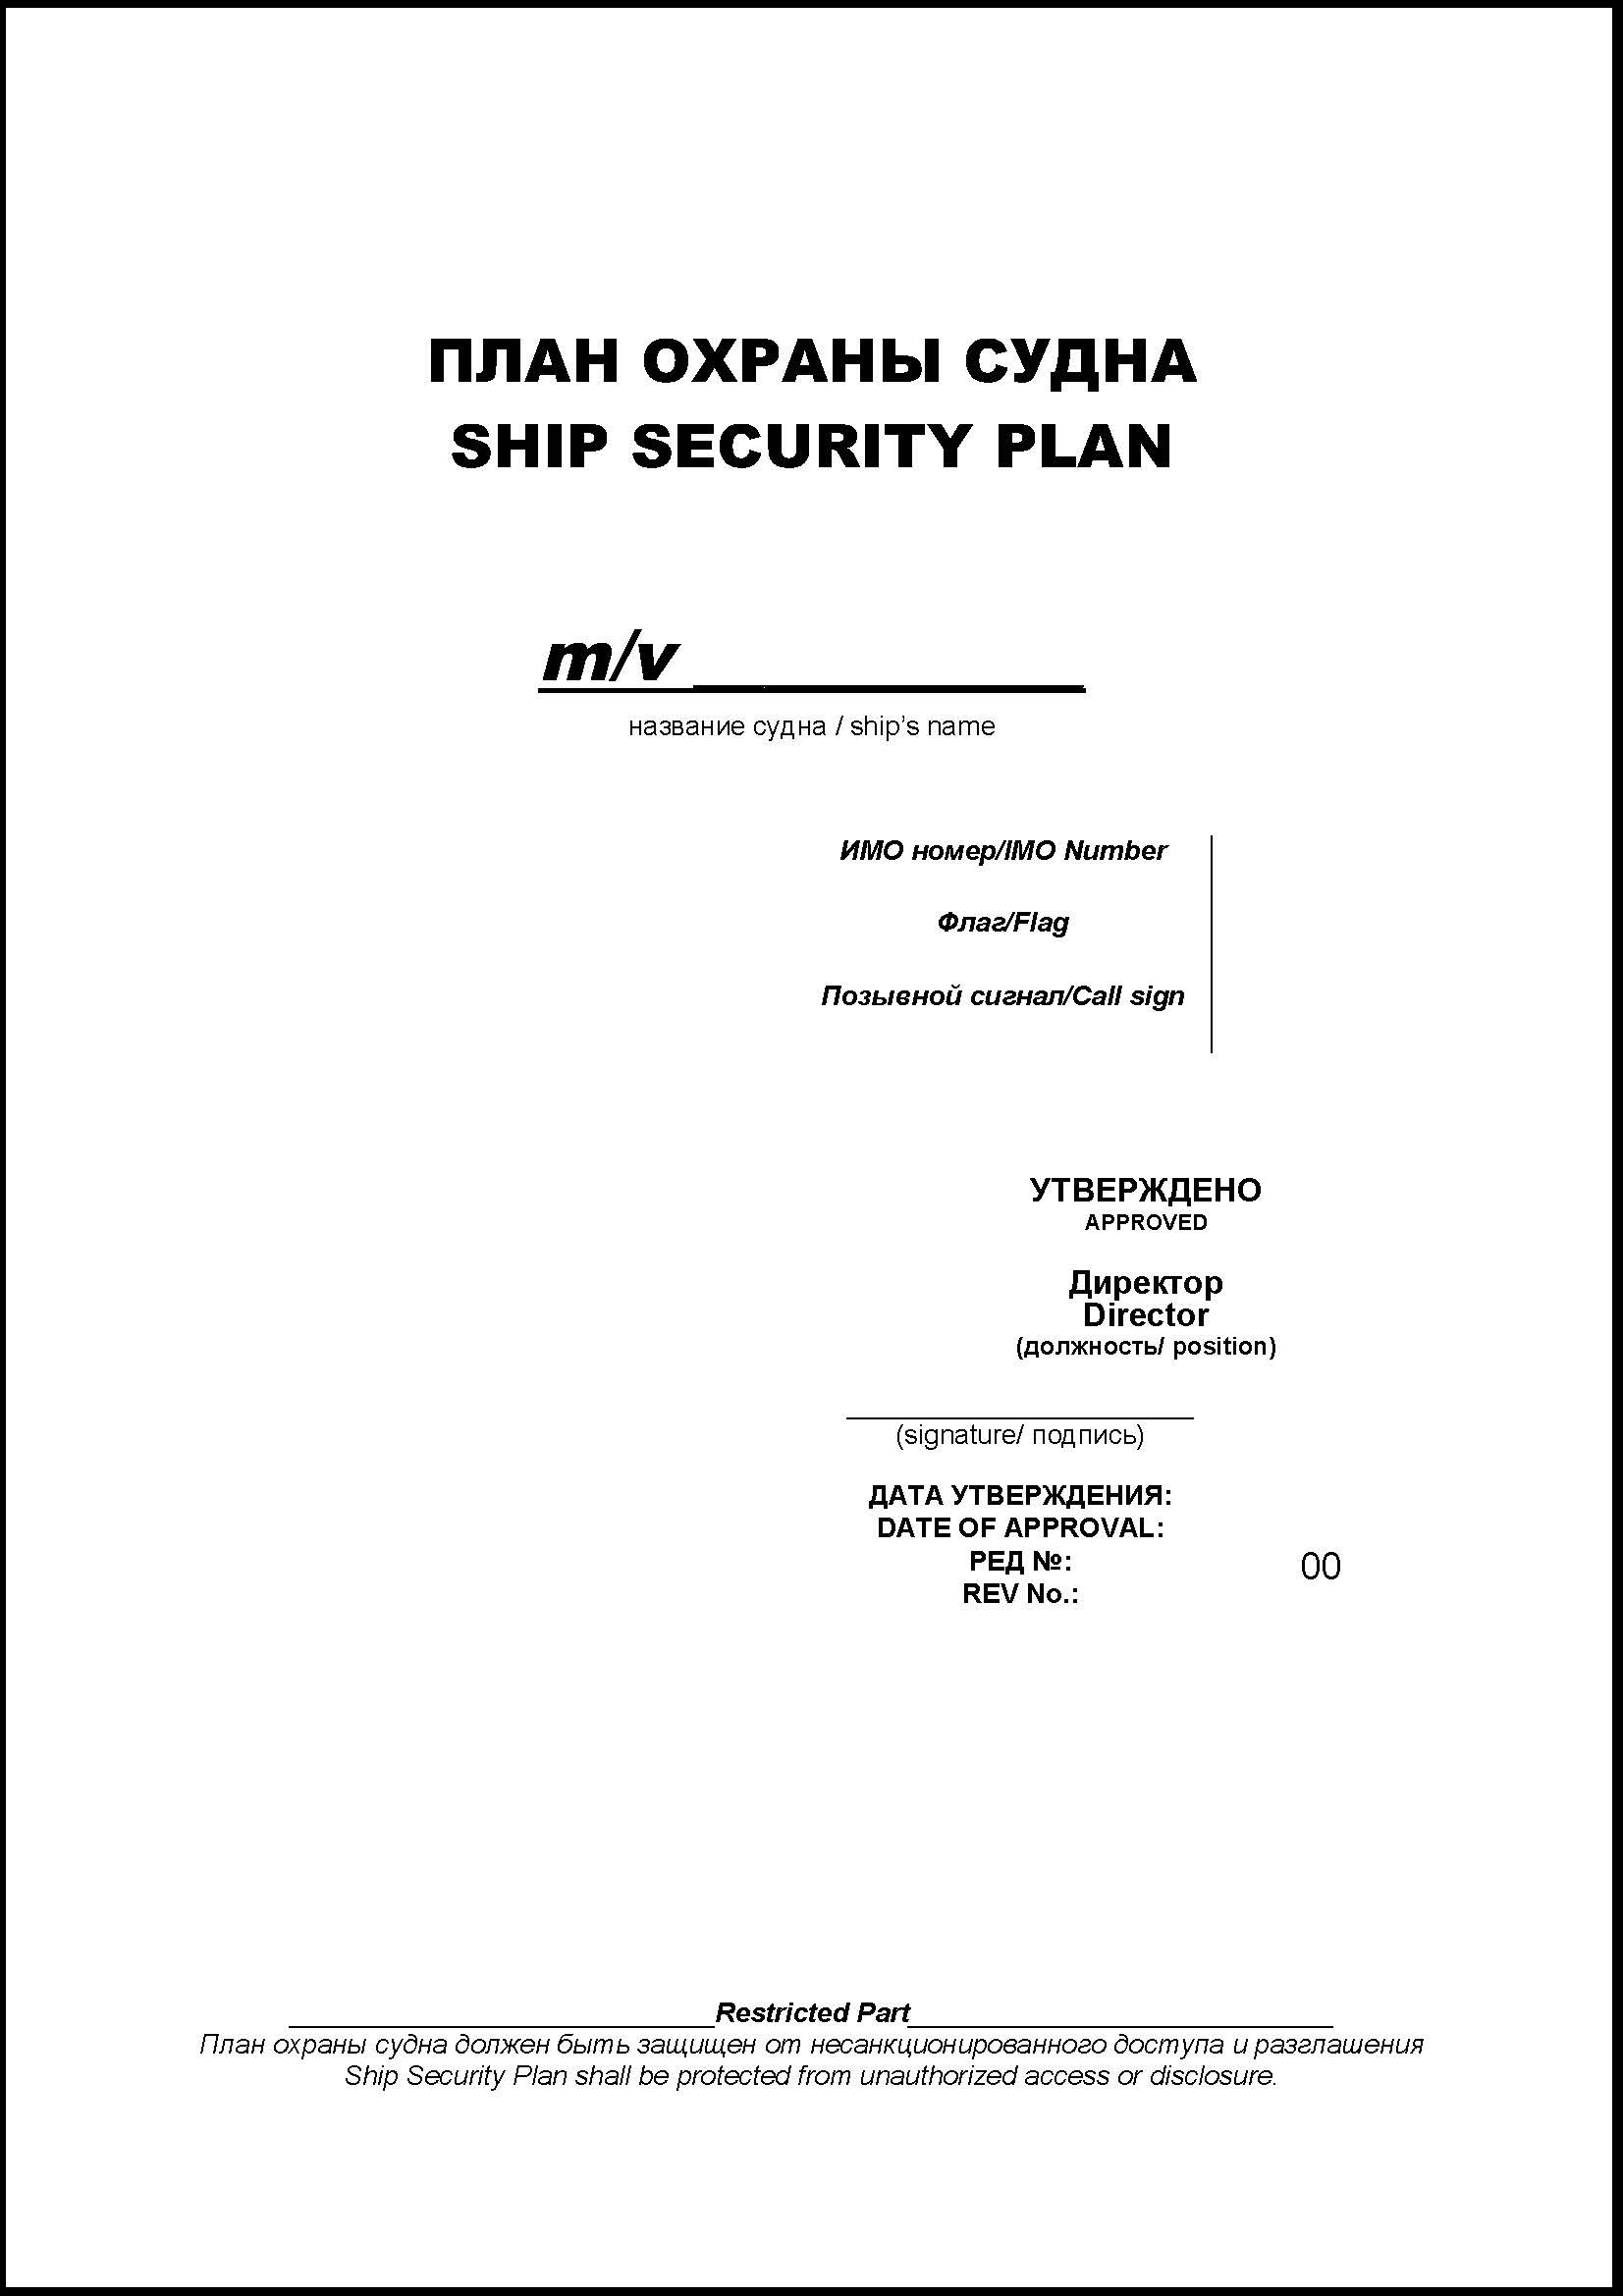 SHIP SECURITY ASSESSMENT AND PLAN MSM – Sample Security Assessment